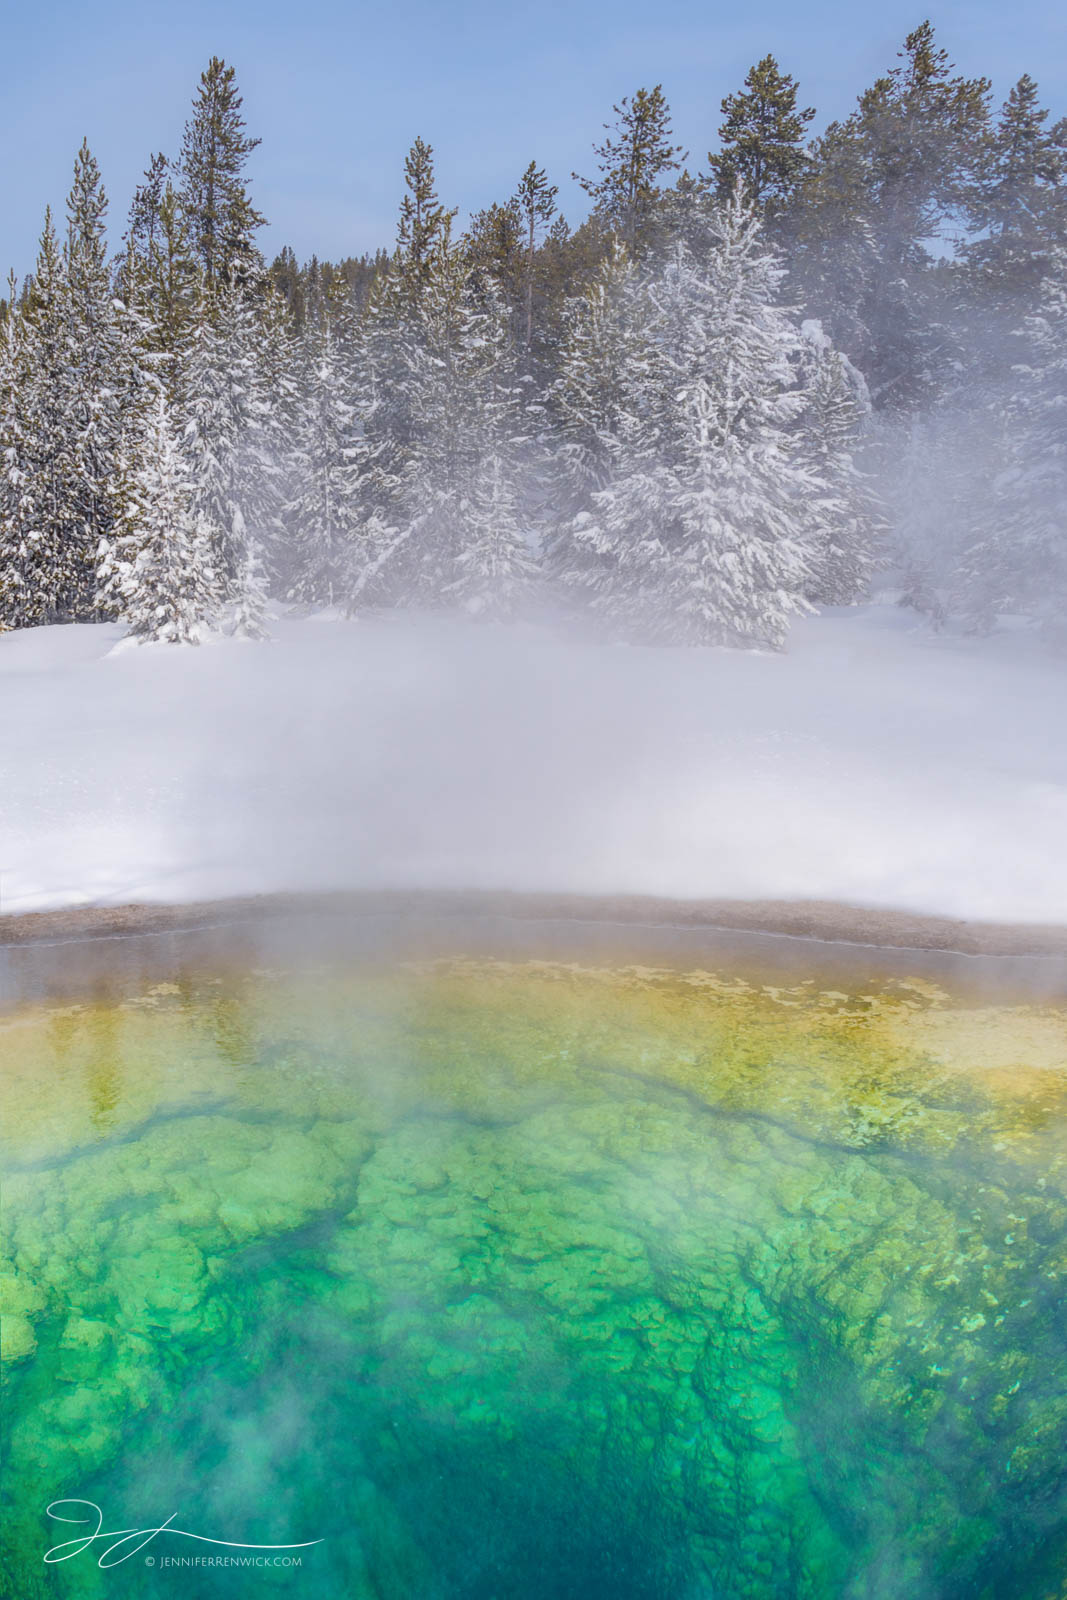 A hot spring in winter resembles a cross-section, seeming to reveal the underground of the landscape.